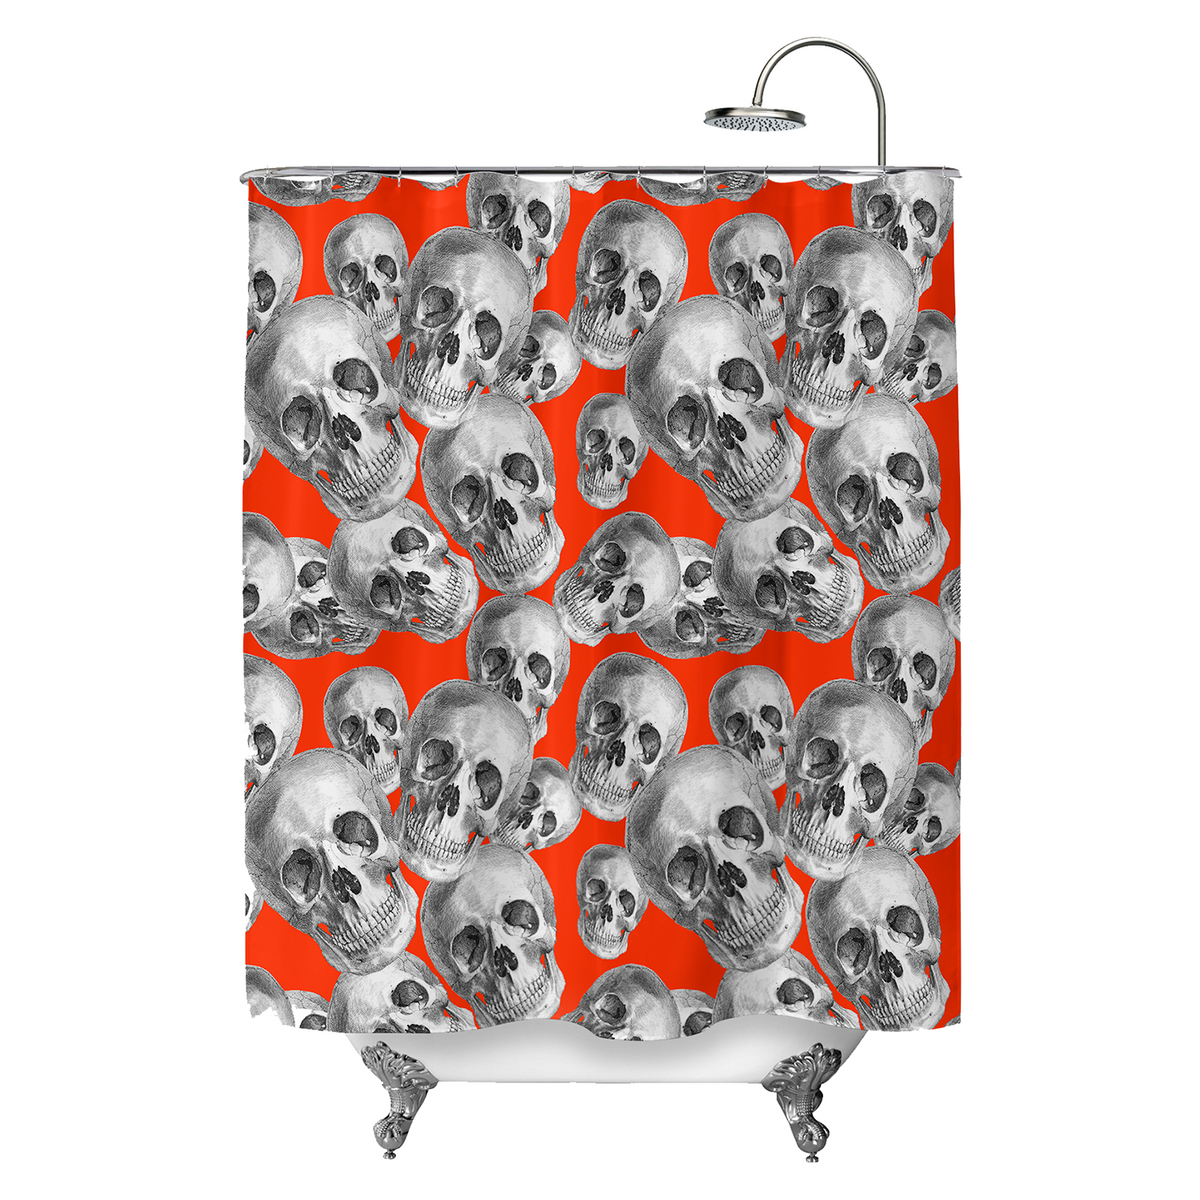 Skulls On Red Shower Curtain ChillCave